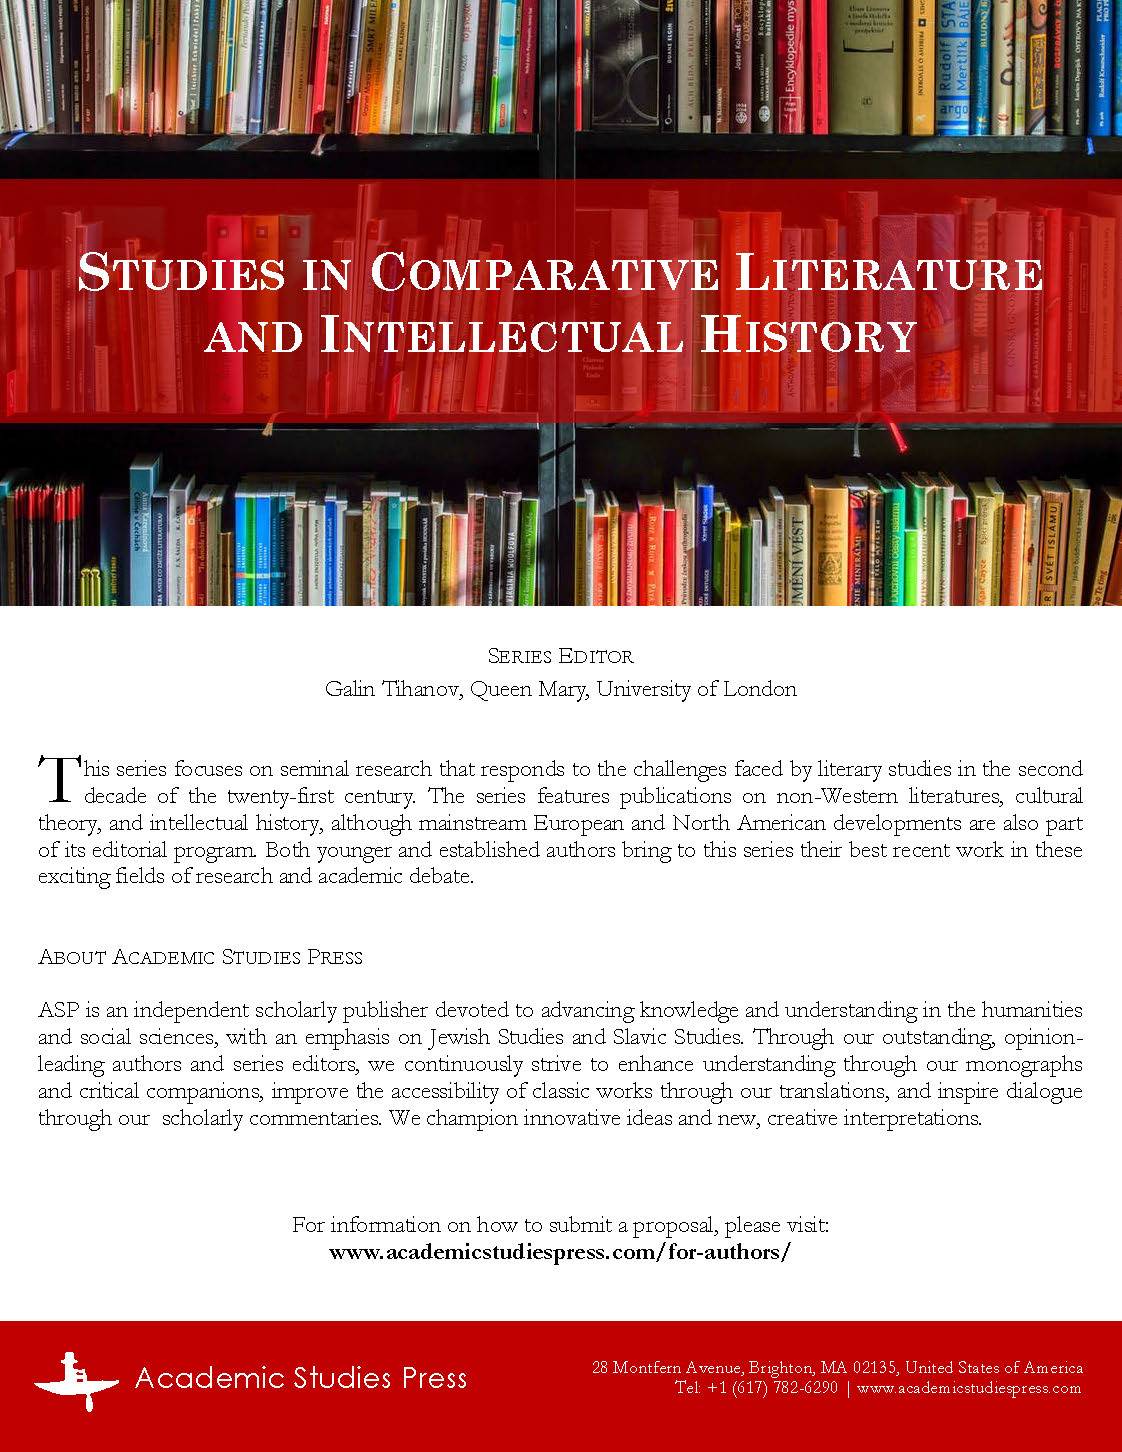 Studies in Comparative Literature and Intellectual History Flyer.jpg